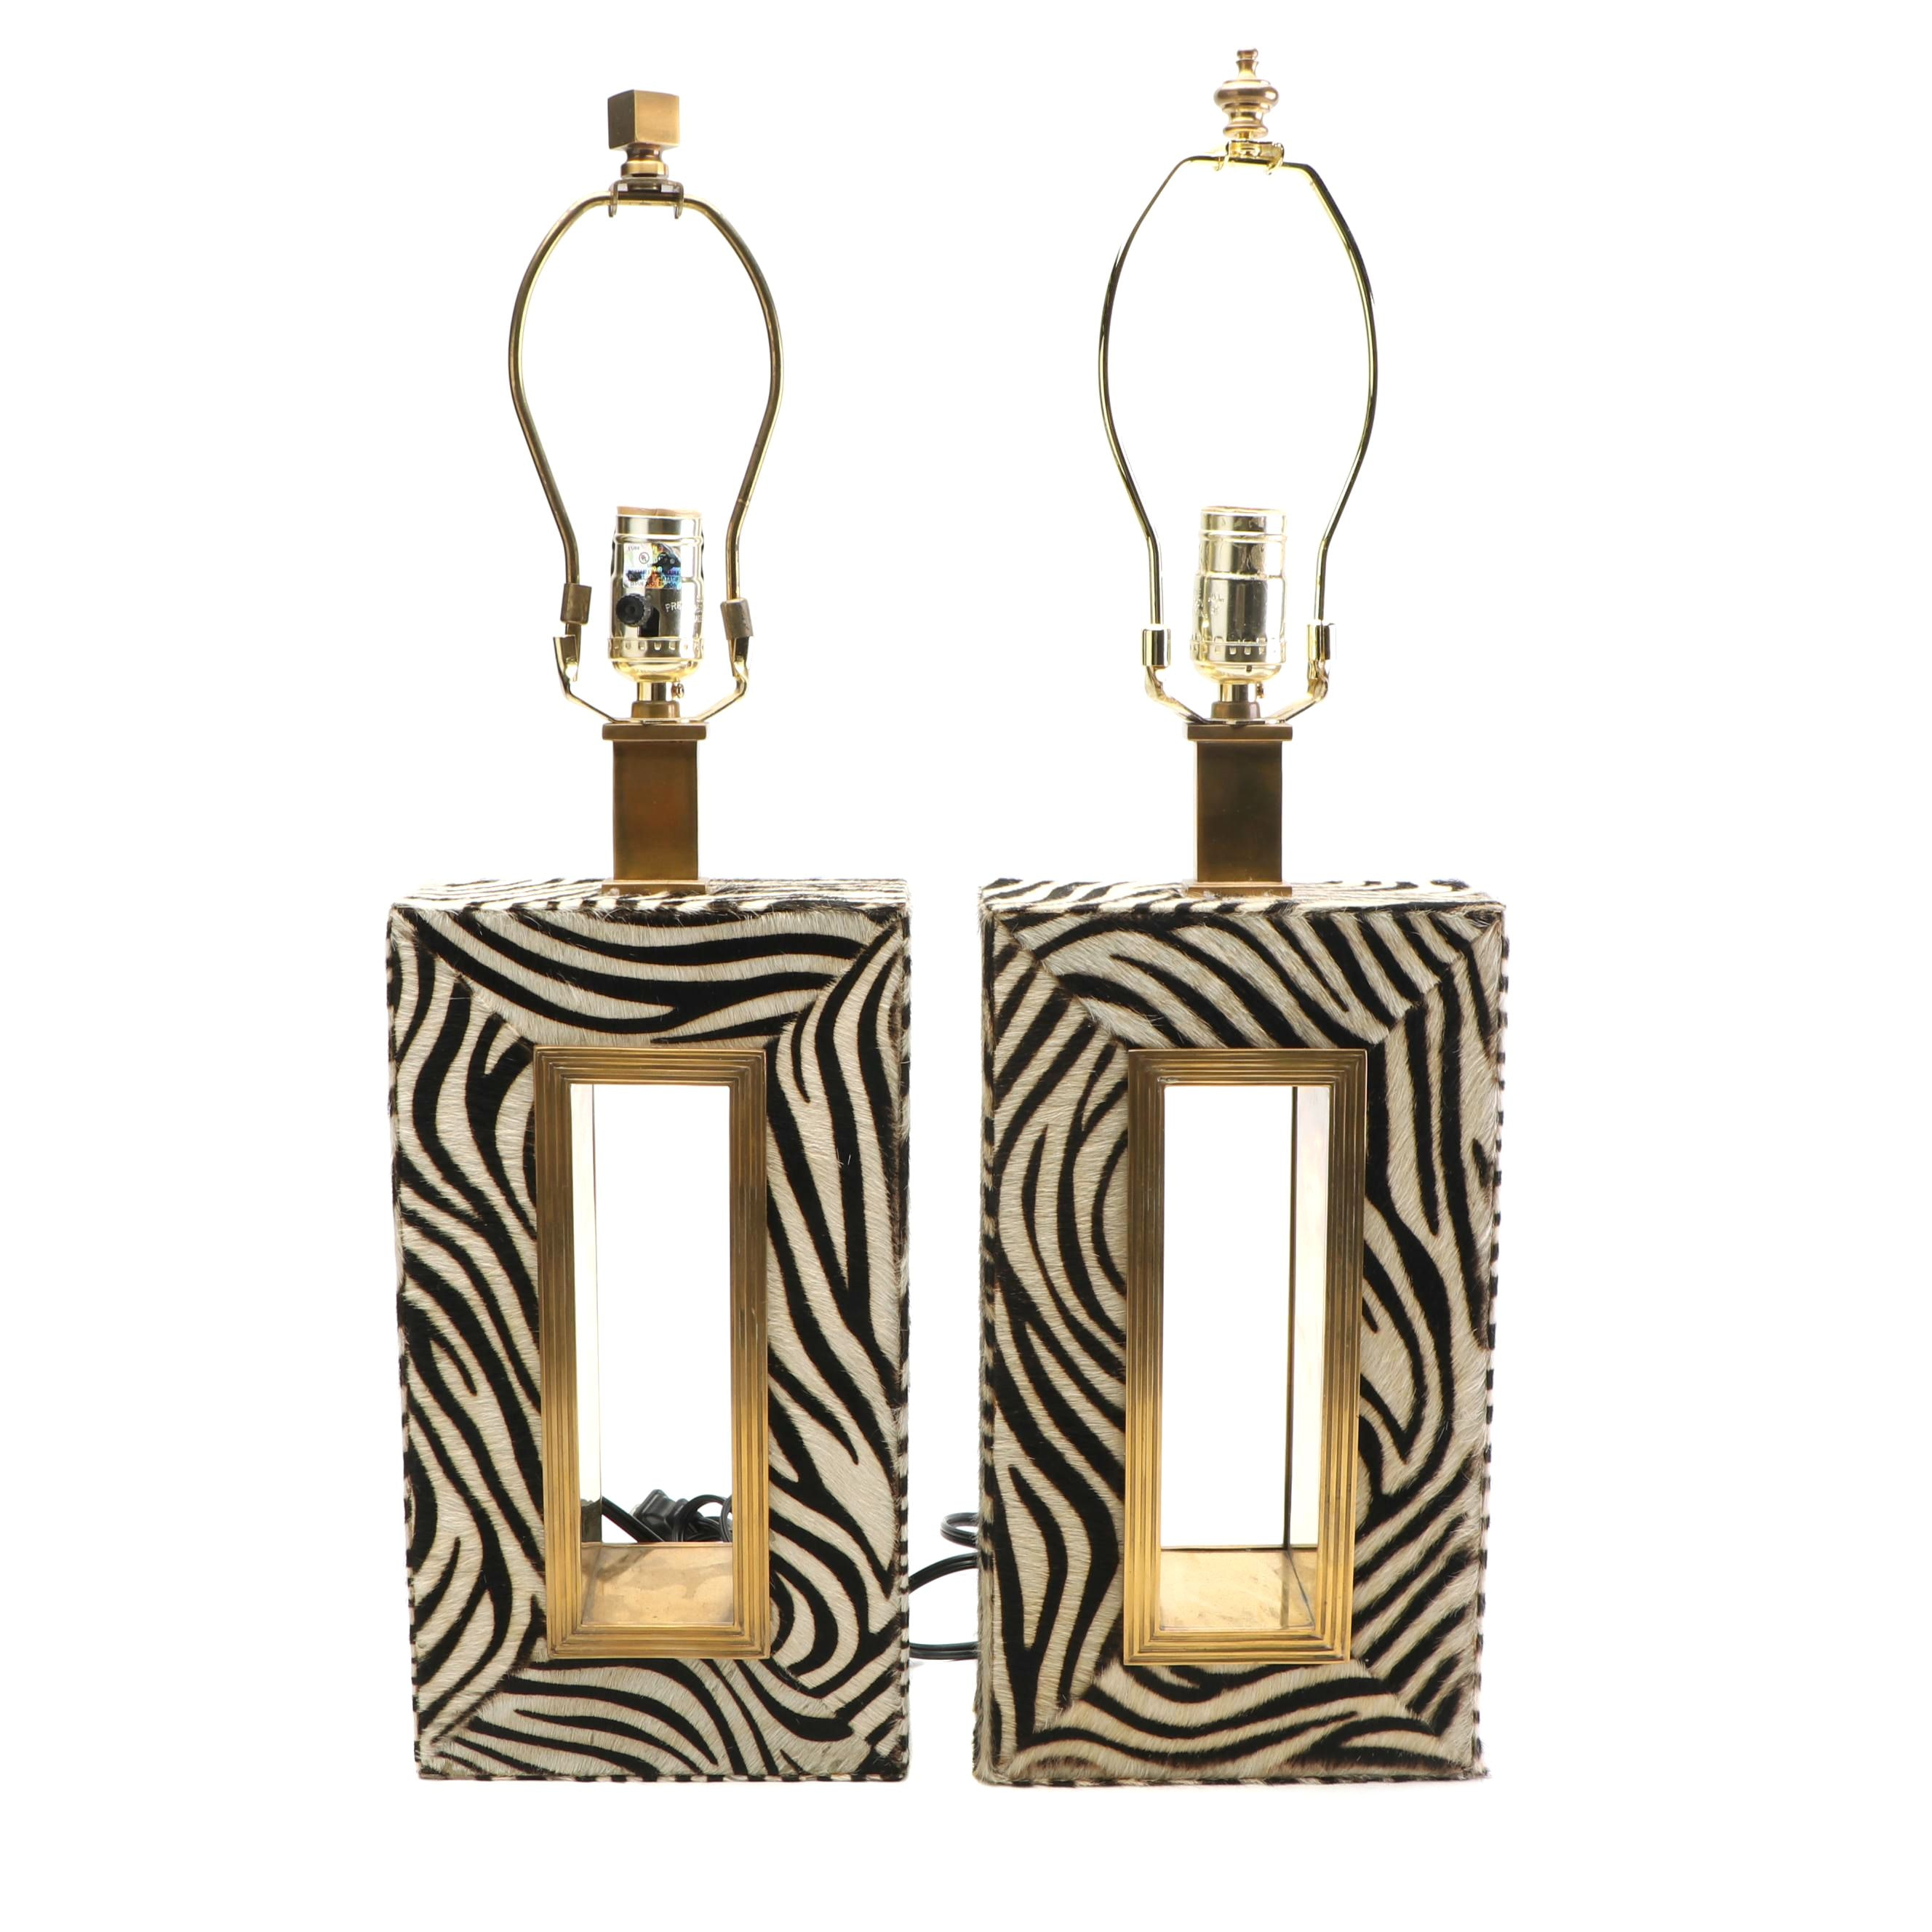 Brass and Zebra Print Pony Hair Table Lamps, Mid to Late 20th Century